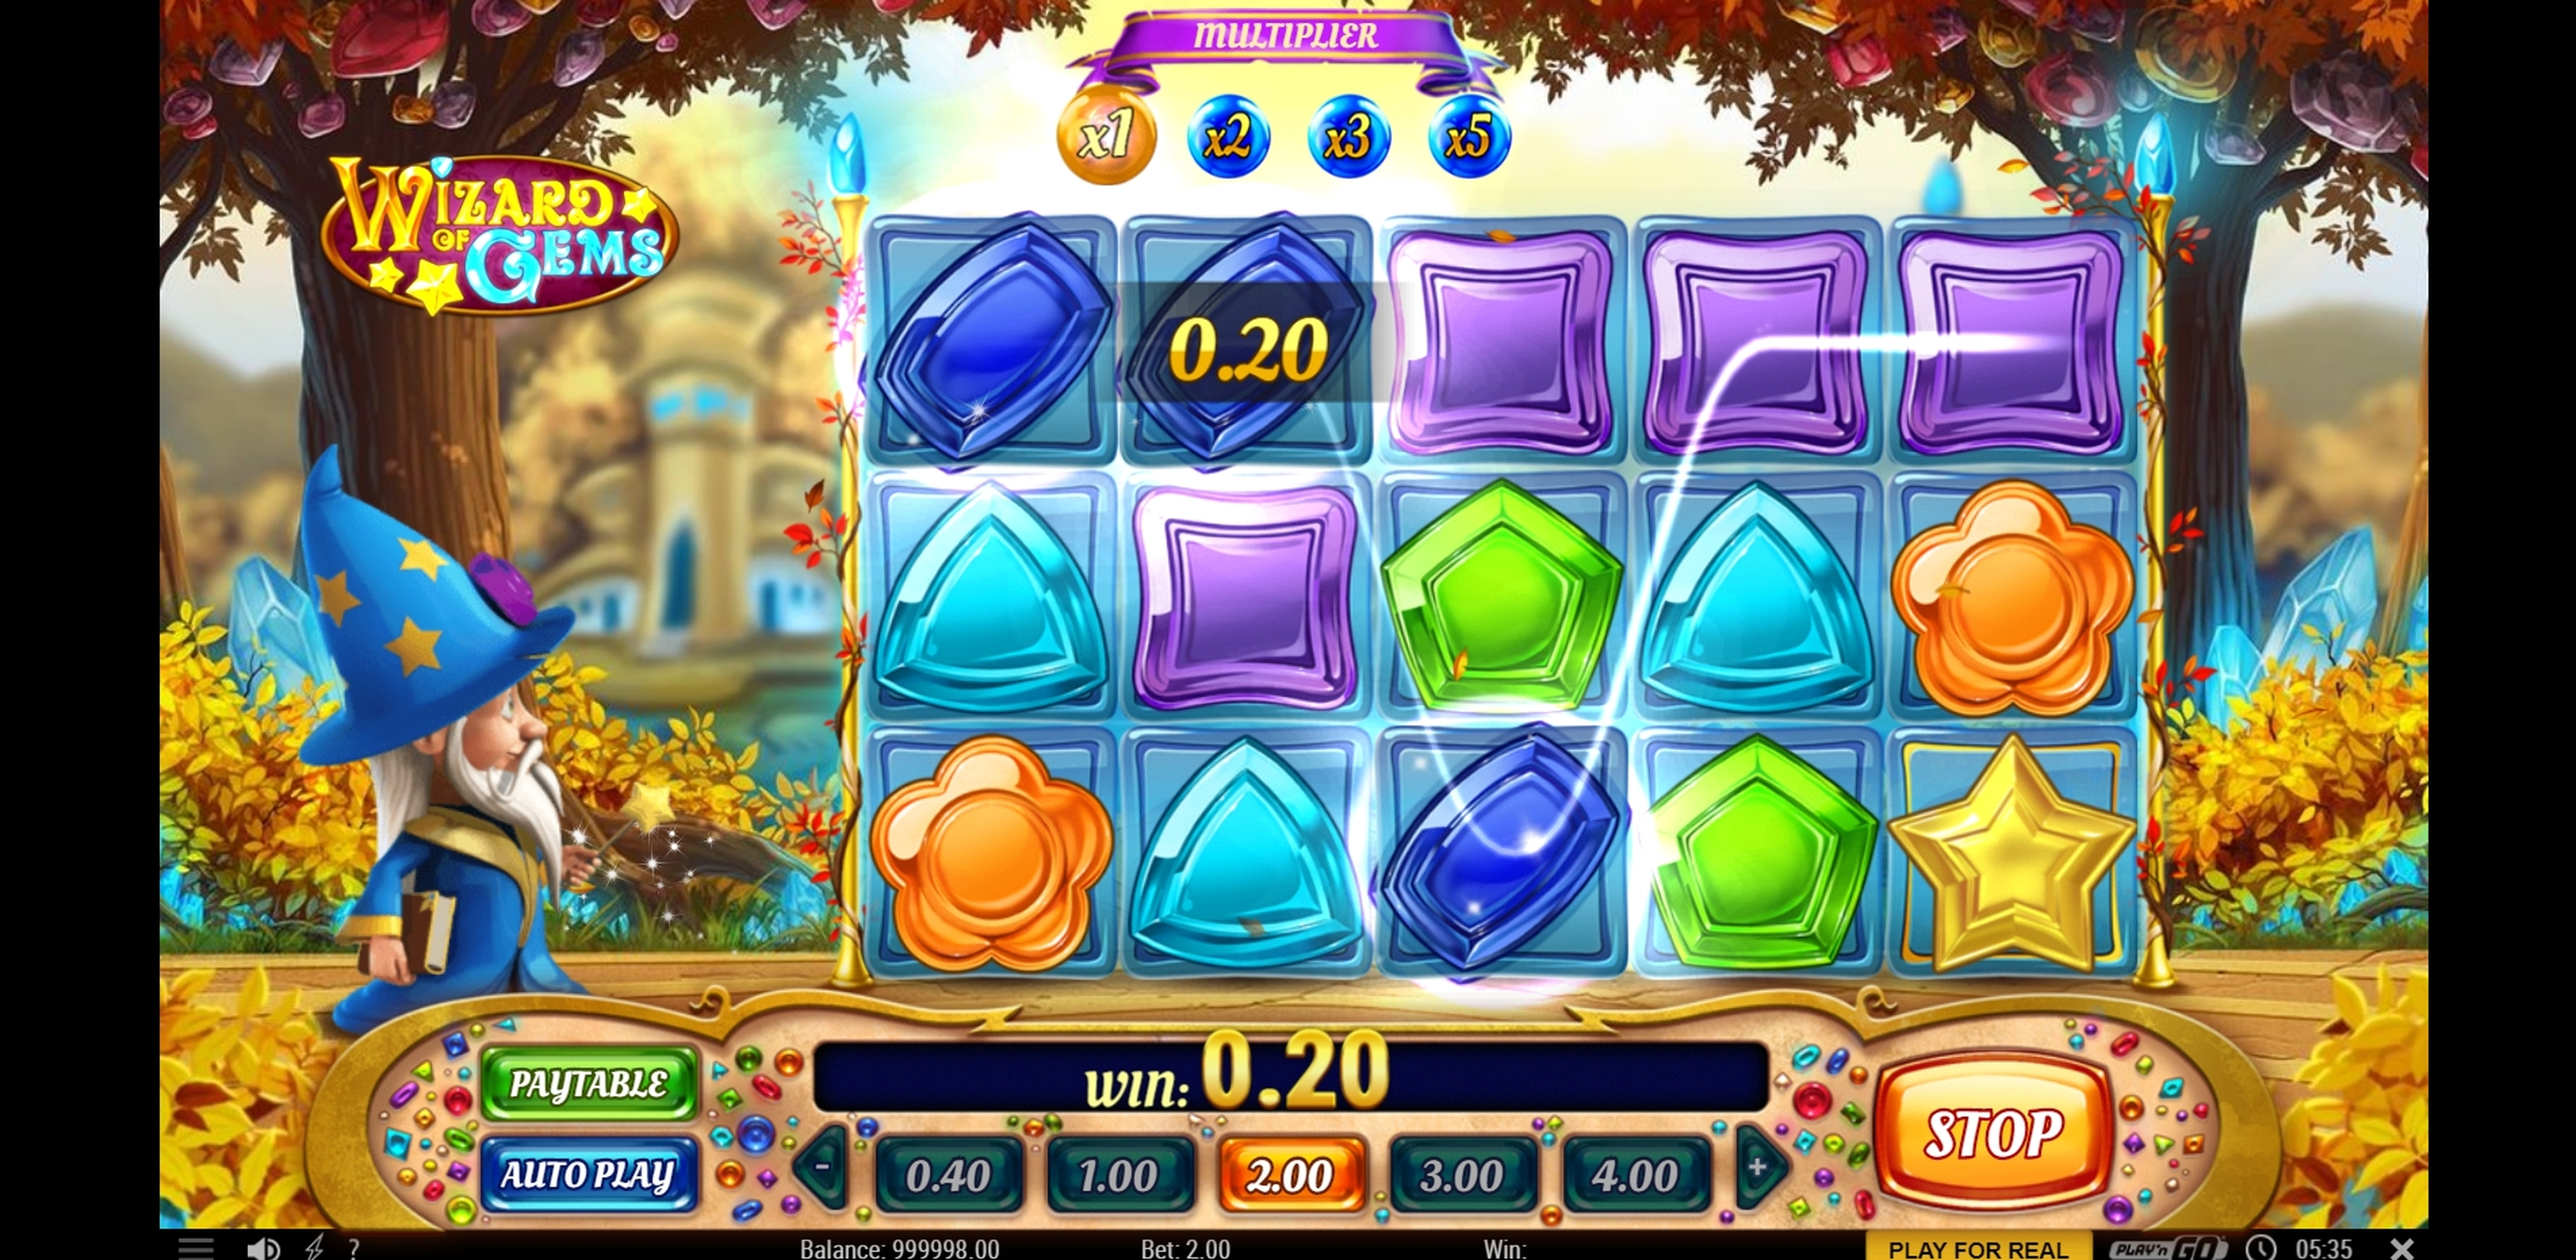 Win Money in Wizard of Gems Free Slot Game by Playn GO